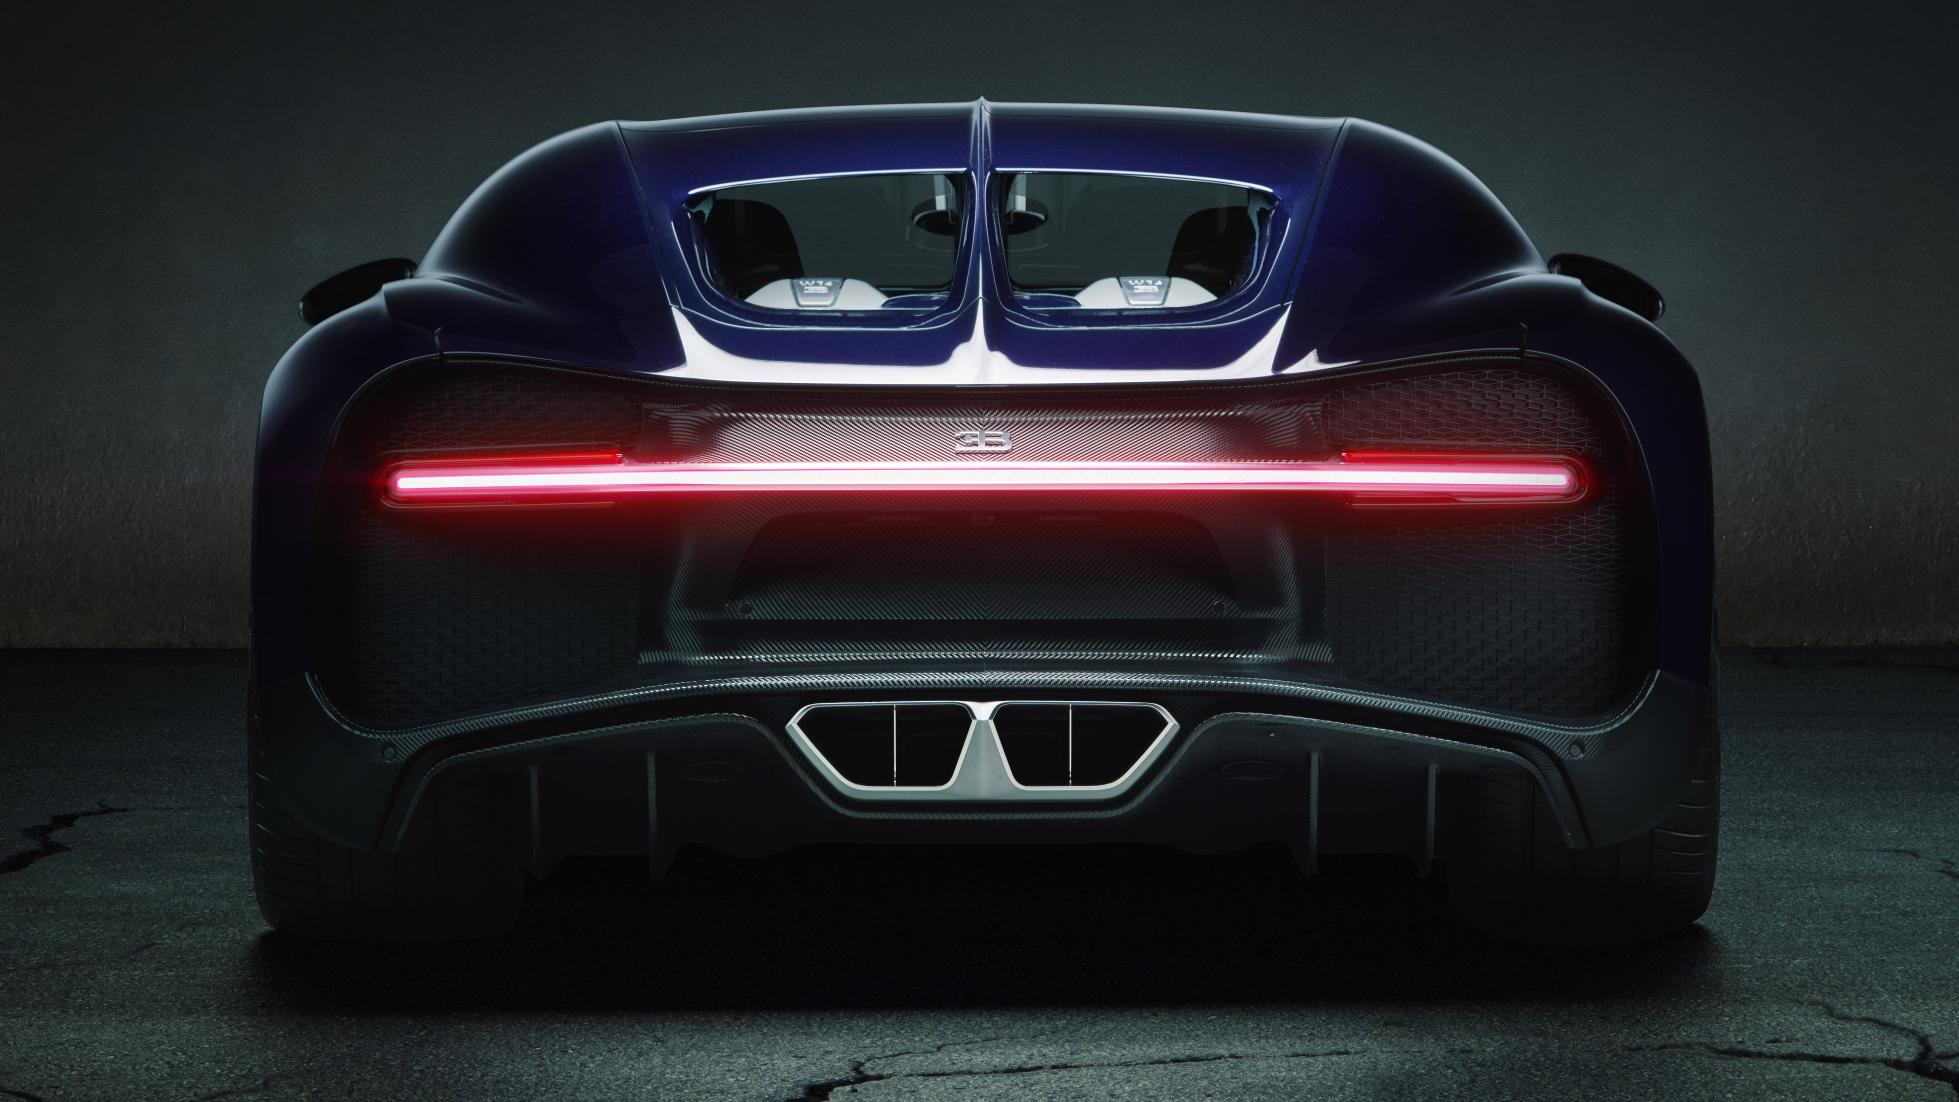 10 Things You Must Know About The New Bugatti Chiron | Bugatti Chiron's backlight